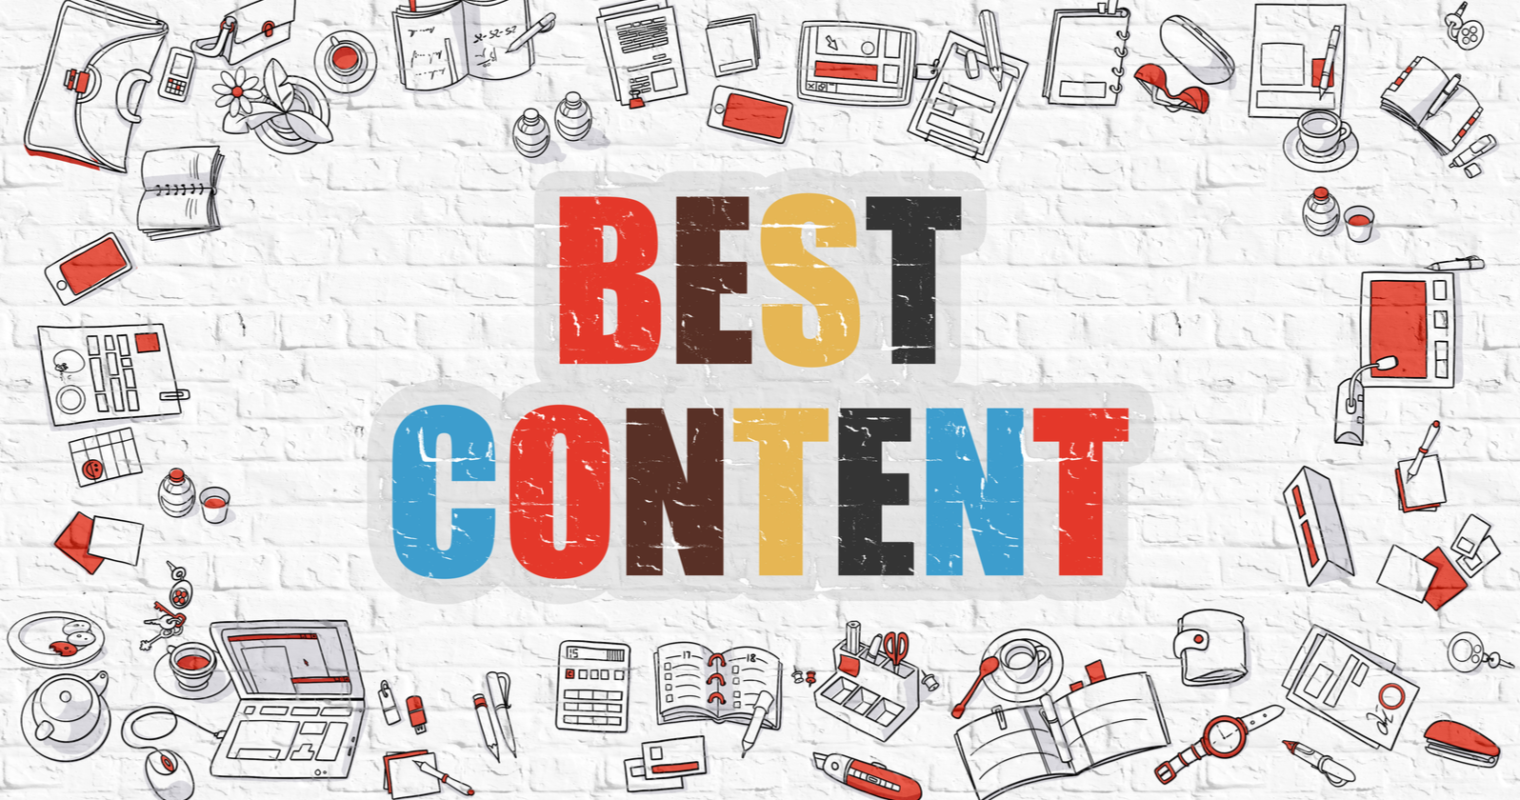 https://res.cloudinary.com/dpyy9uysx/image/upload/v1550054074/seo/9-Tips-for-Creating-Your-Best-SEO-Content-in-2019-SEOWarriors.png